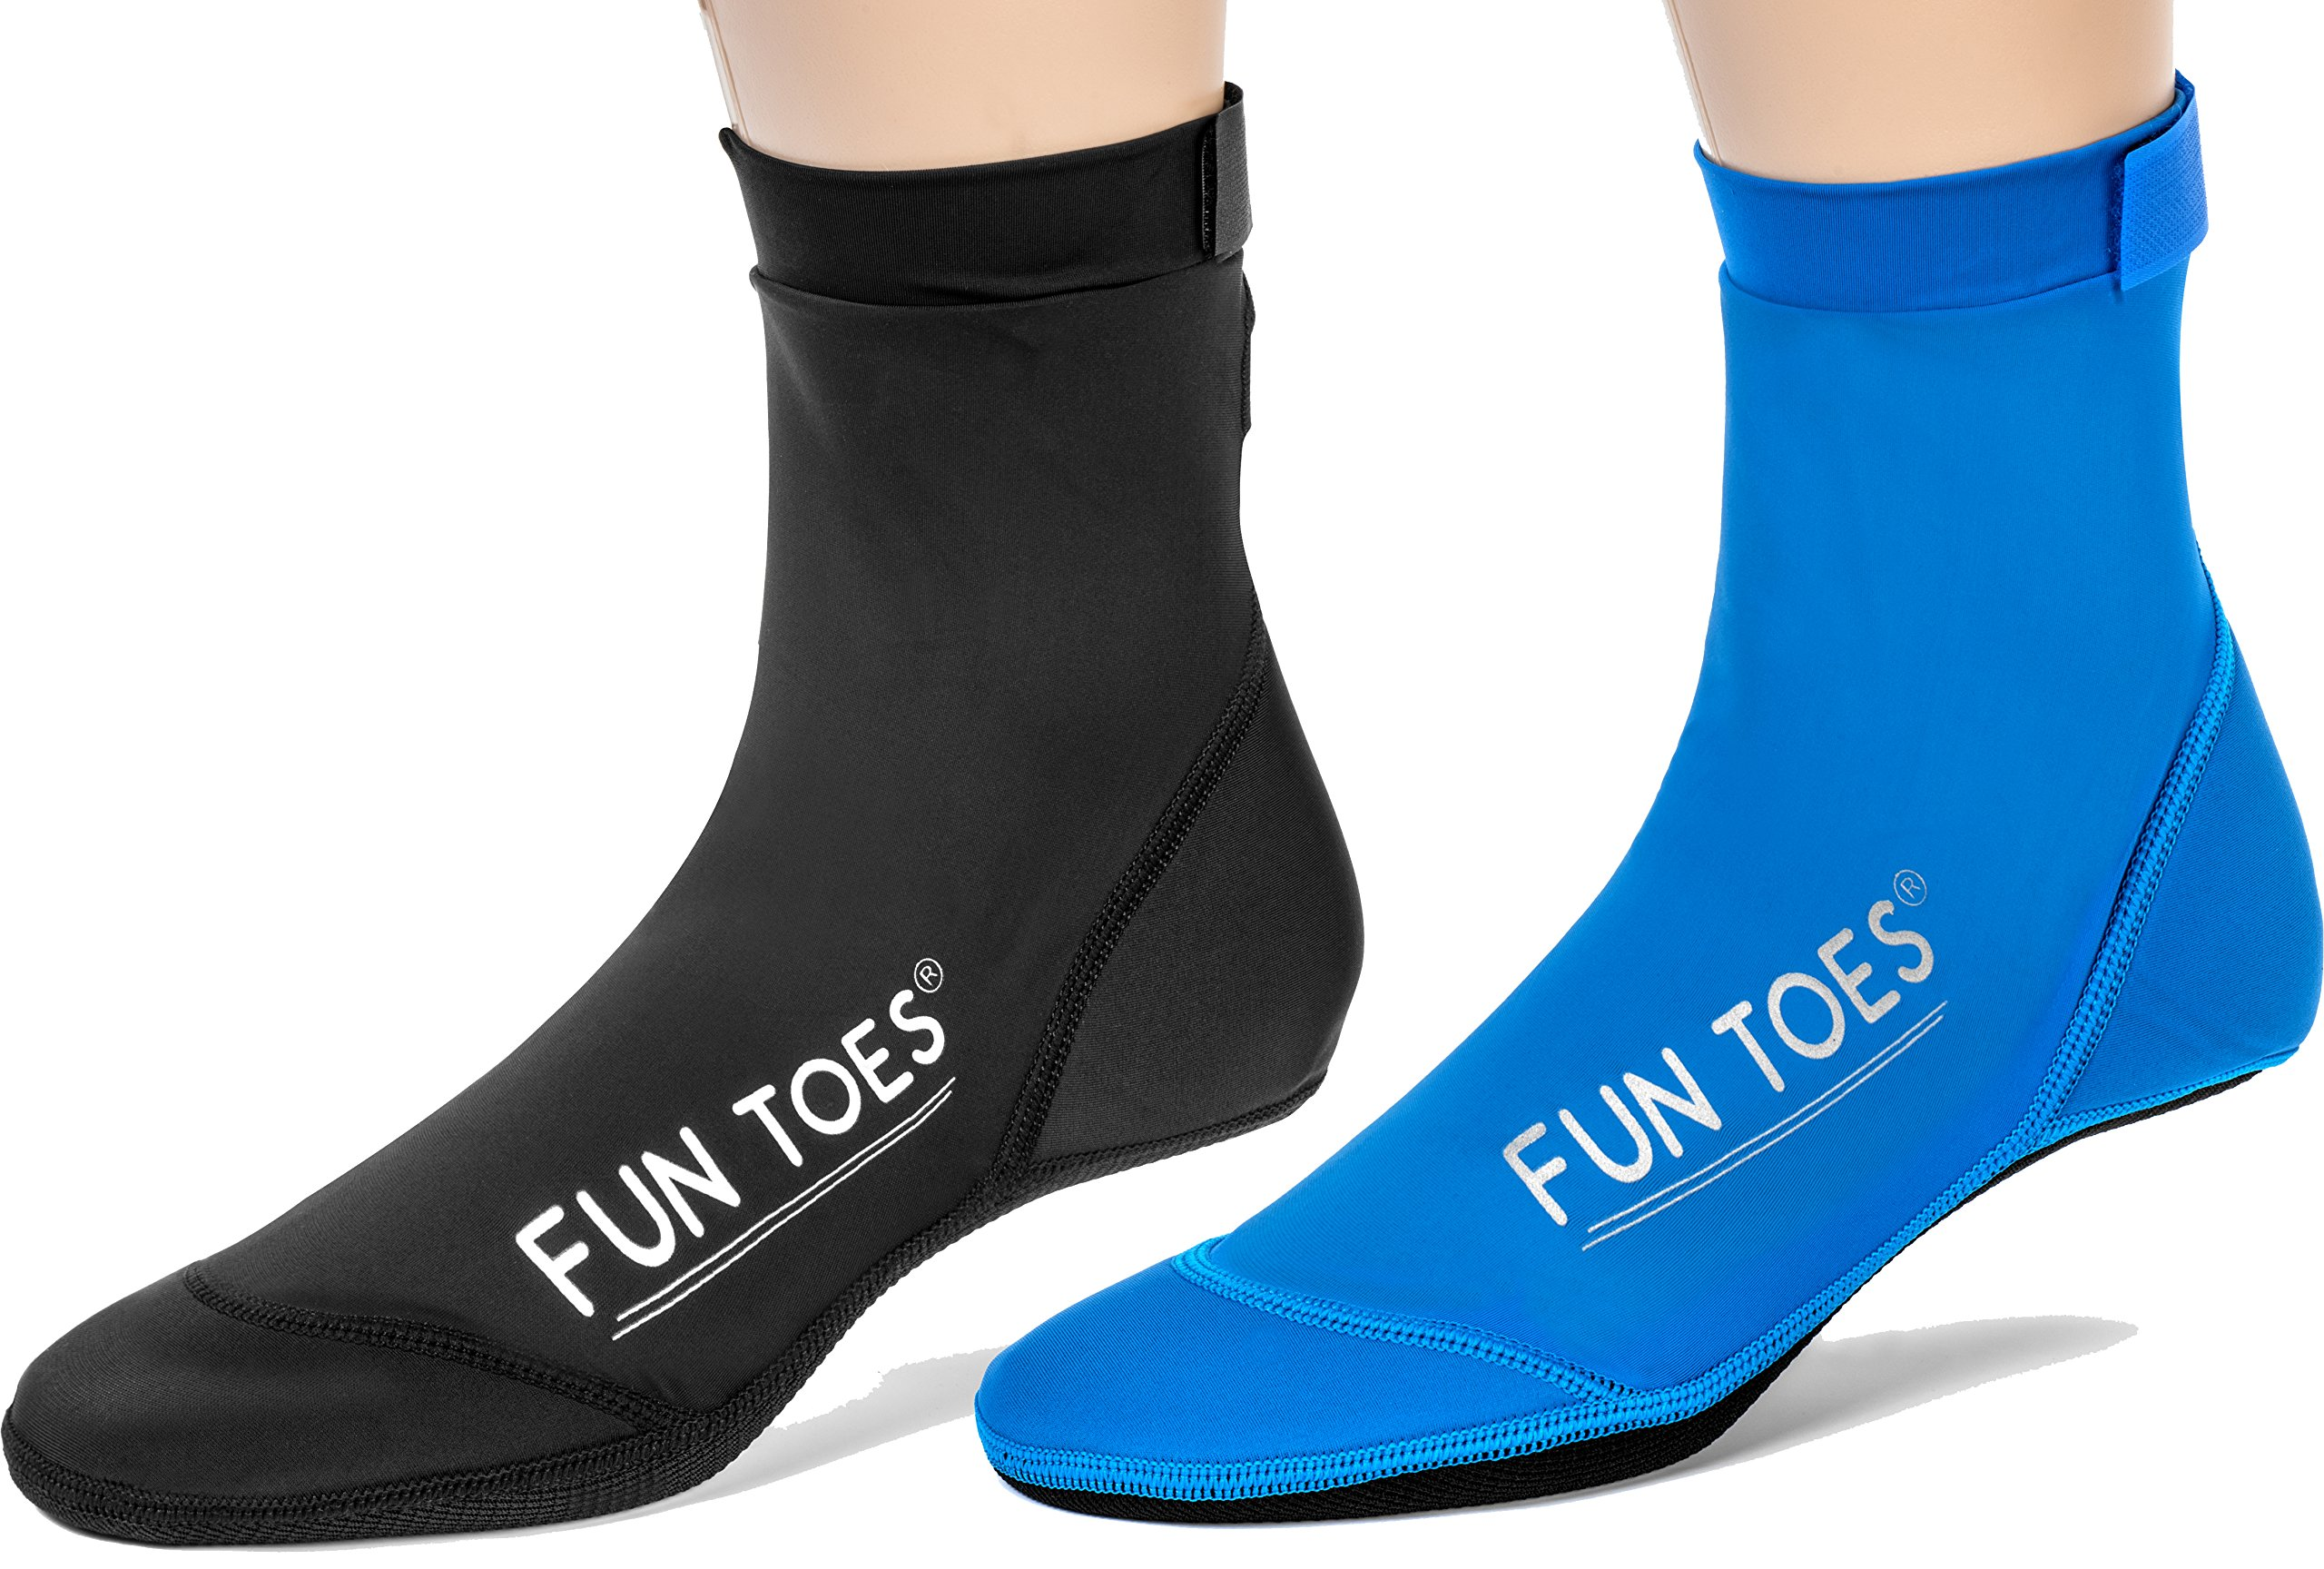 FUN TOES 2 Pairs BEACH SOCKS for Volleyball Soccer, Camping, Rafting, Diving and all sand sports (L Women: 10.5-12 / Men 9-10.5, Black-Blue)